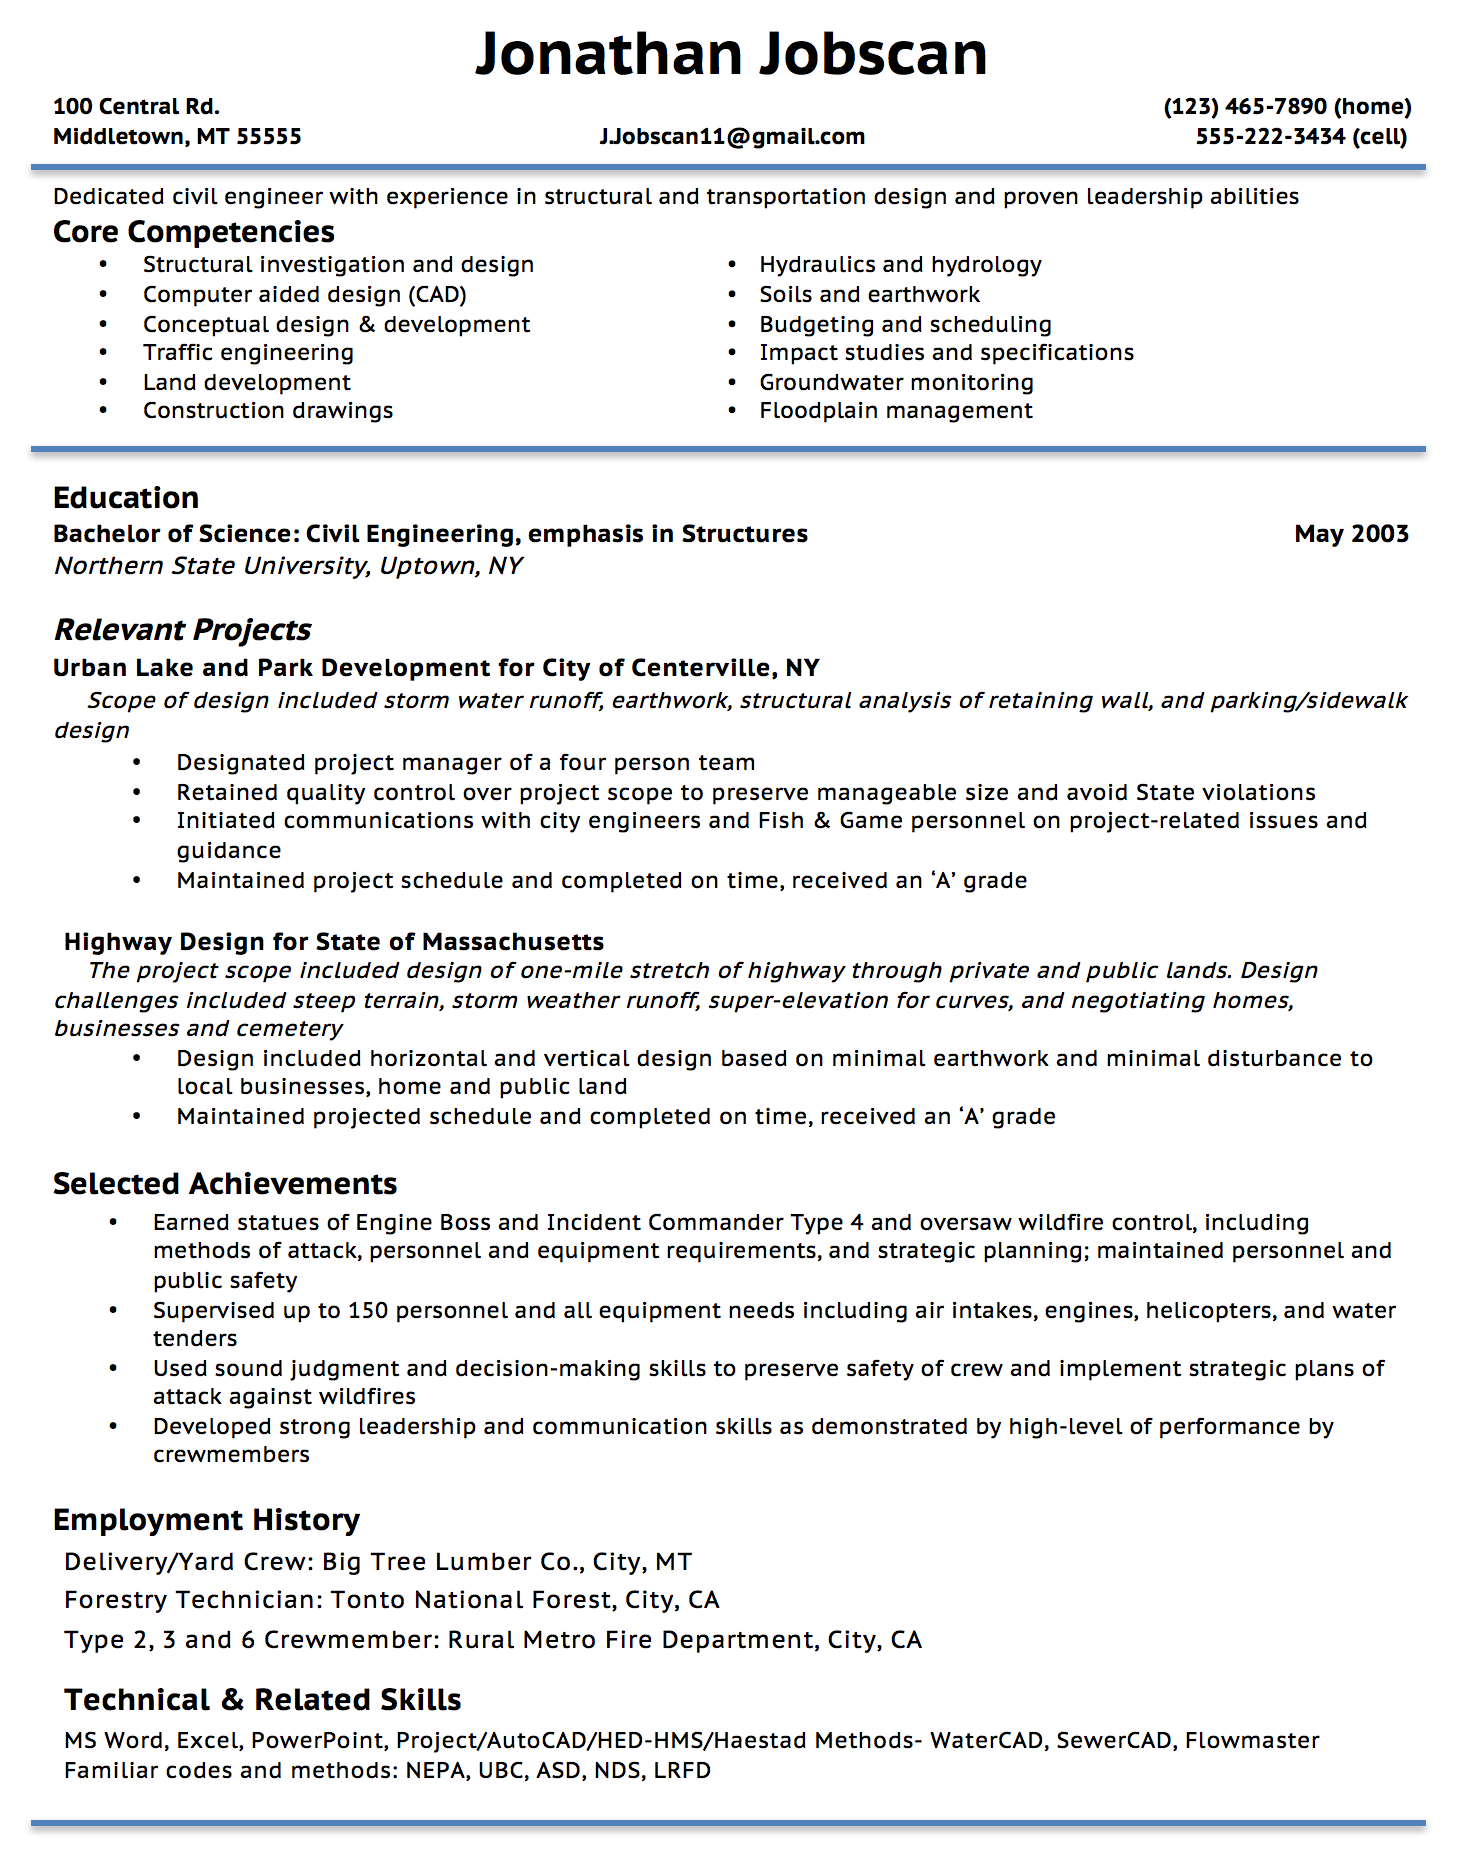 Opposenewapstandardsus  Pretty Resume Writing Guide  Jobscan With Inspiring Example Of A Functional Resume Format With Nice Entry Level Resume Also Action Words For Resume In Addition How To Write Resume And Graphic Designer Resume As Well As Business Resume Additionally Google Resume From Jobscanco With Opposenewapstandardsus  Inspiring Resume Writing Guide  Jobscan With Nice Example Of A Functional Resume Format And Pretty Entry Level Resume Also Action Words For Resume In Addition How To Write Resume From Jobscanco